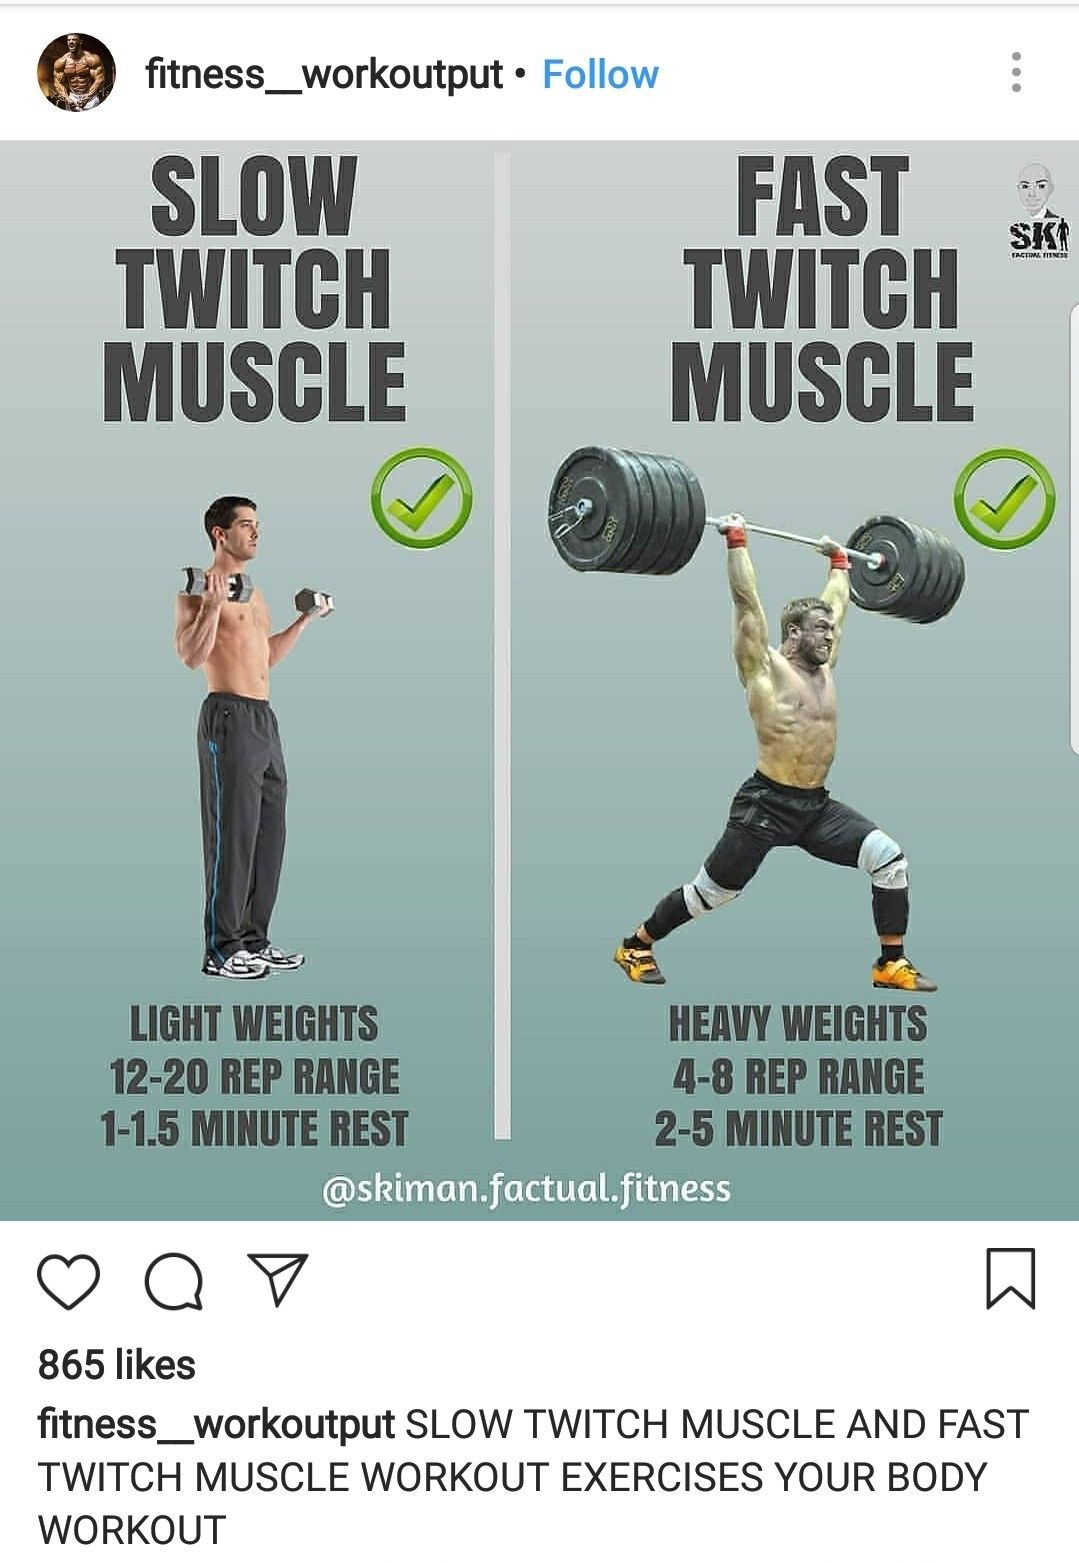 Slow Twitch Muscle Vs Fast Twitch Muscle | Fitness | Muscle